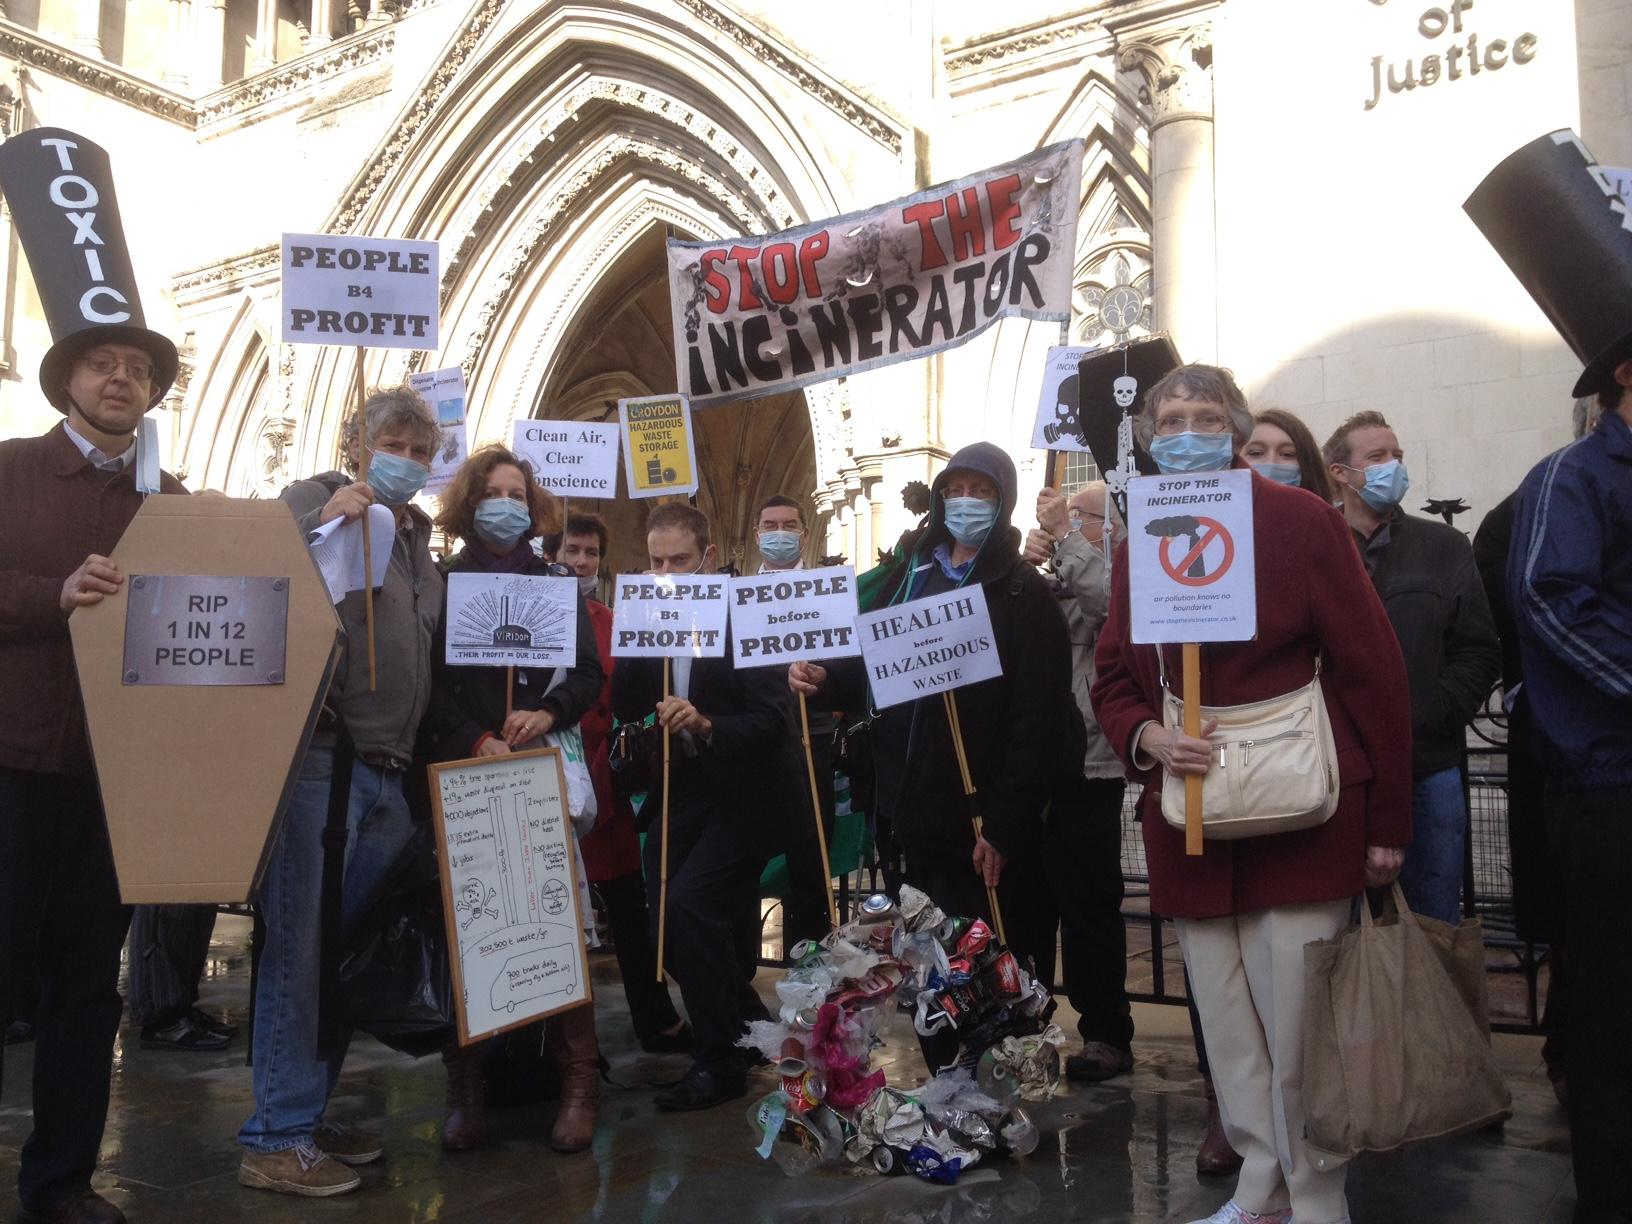 Anti-incinerator campaigners outside the Royal Courts of Justice